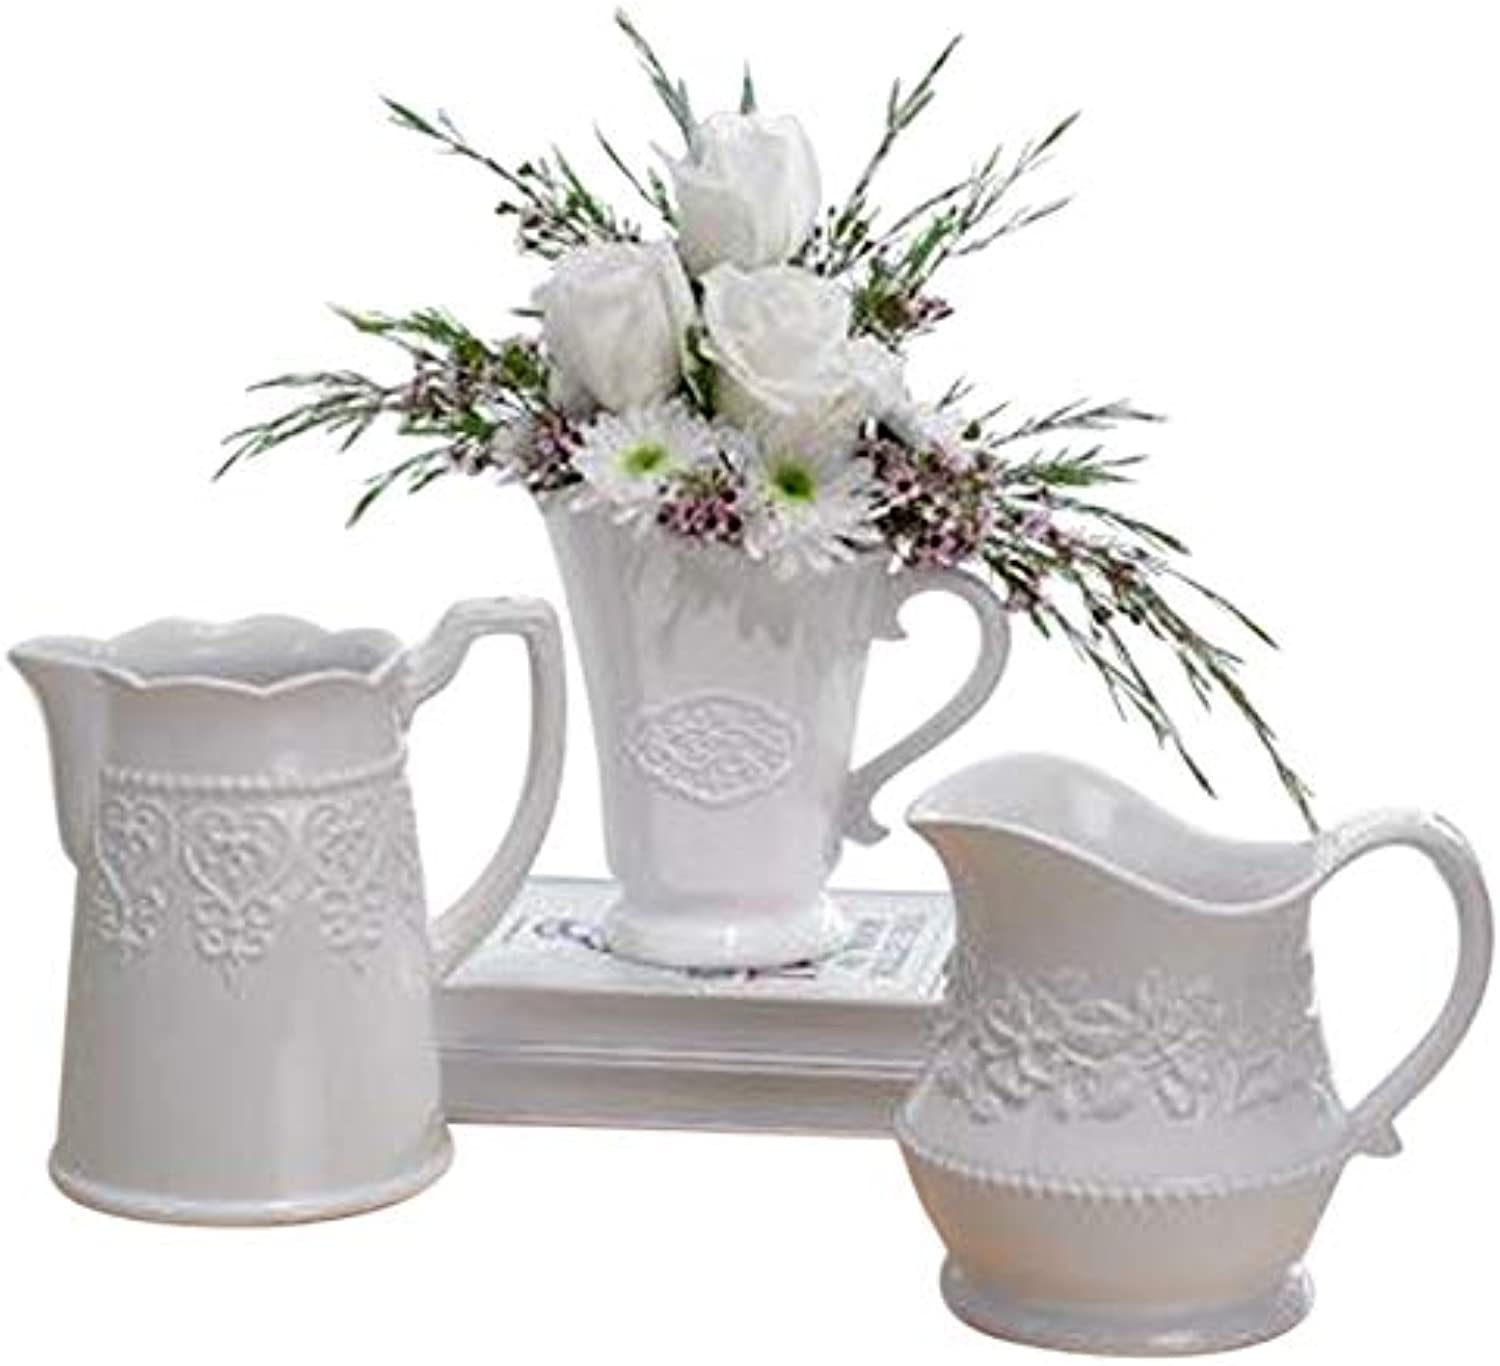 Decorative Floral Classic White 7 x 4 Glossy Ceramic Pitchers Set of 3